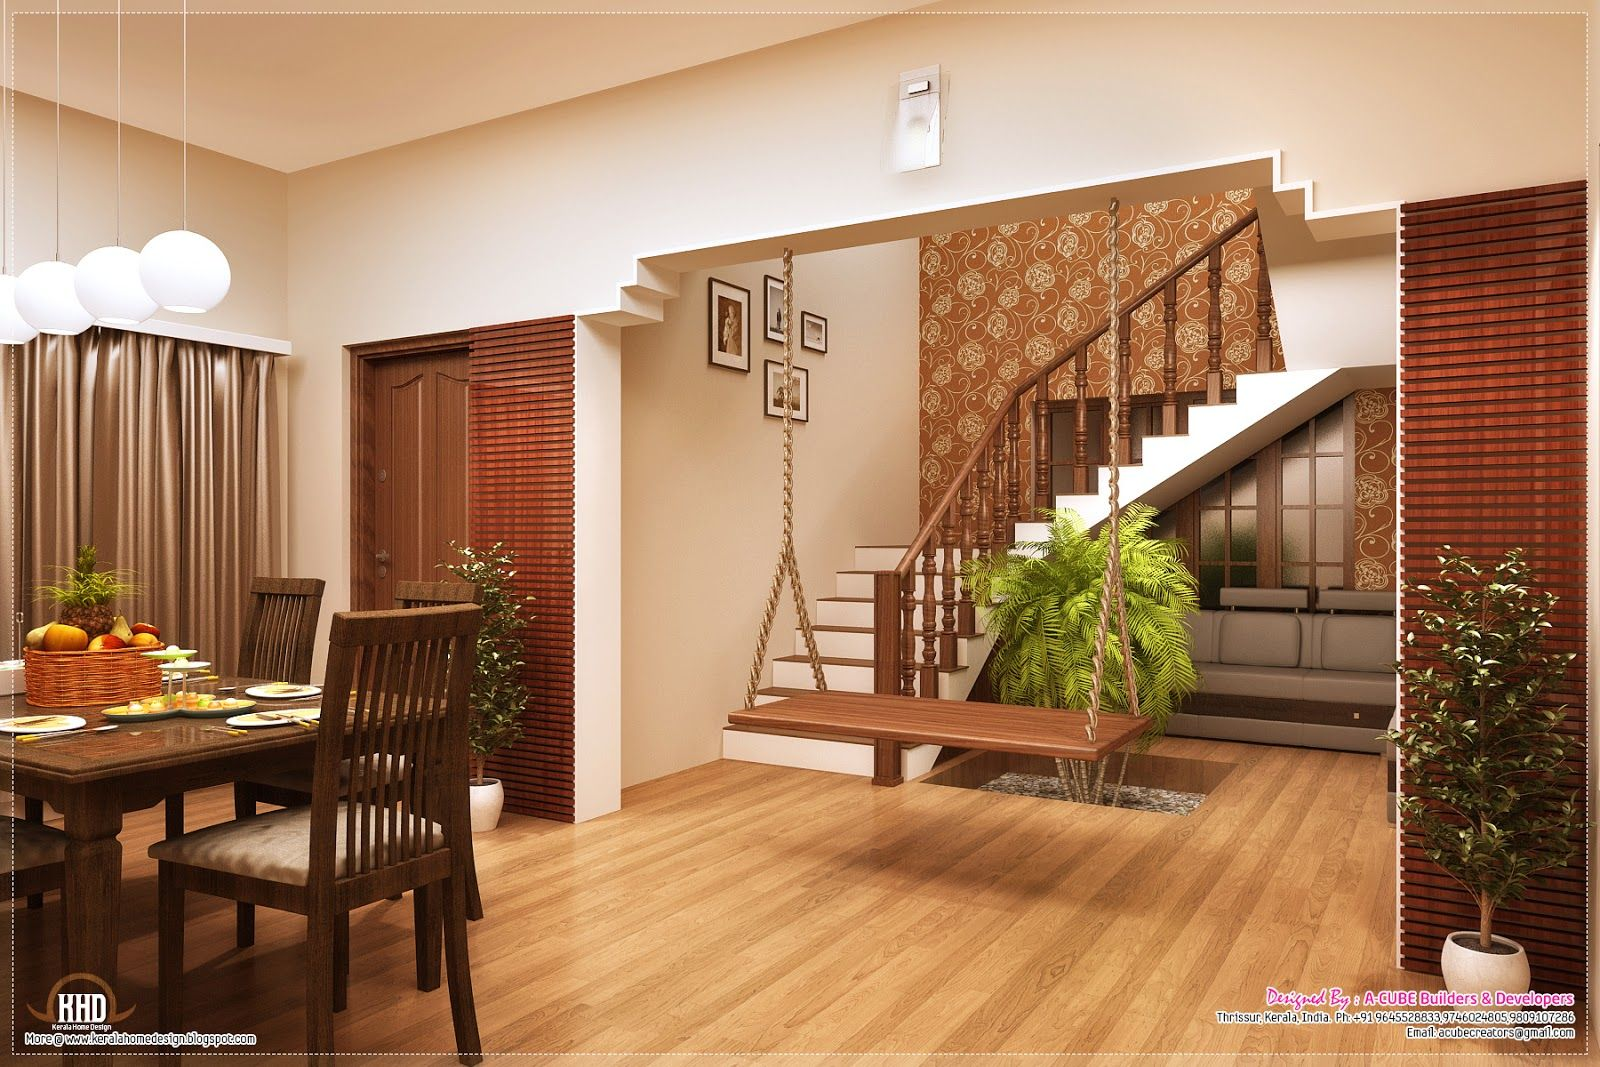 Lawson brothers floor company pinteres for Interior wallpaper designs india